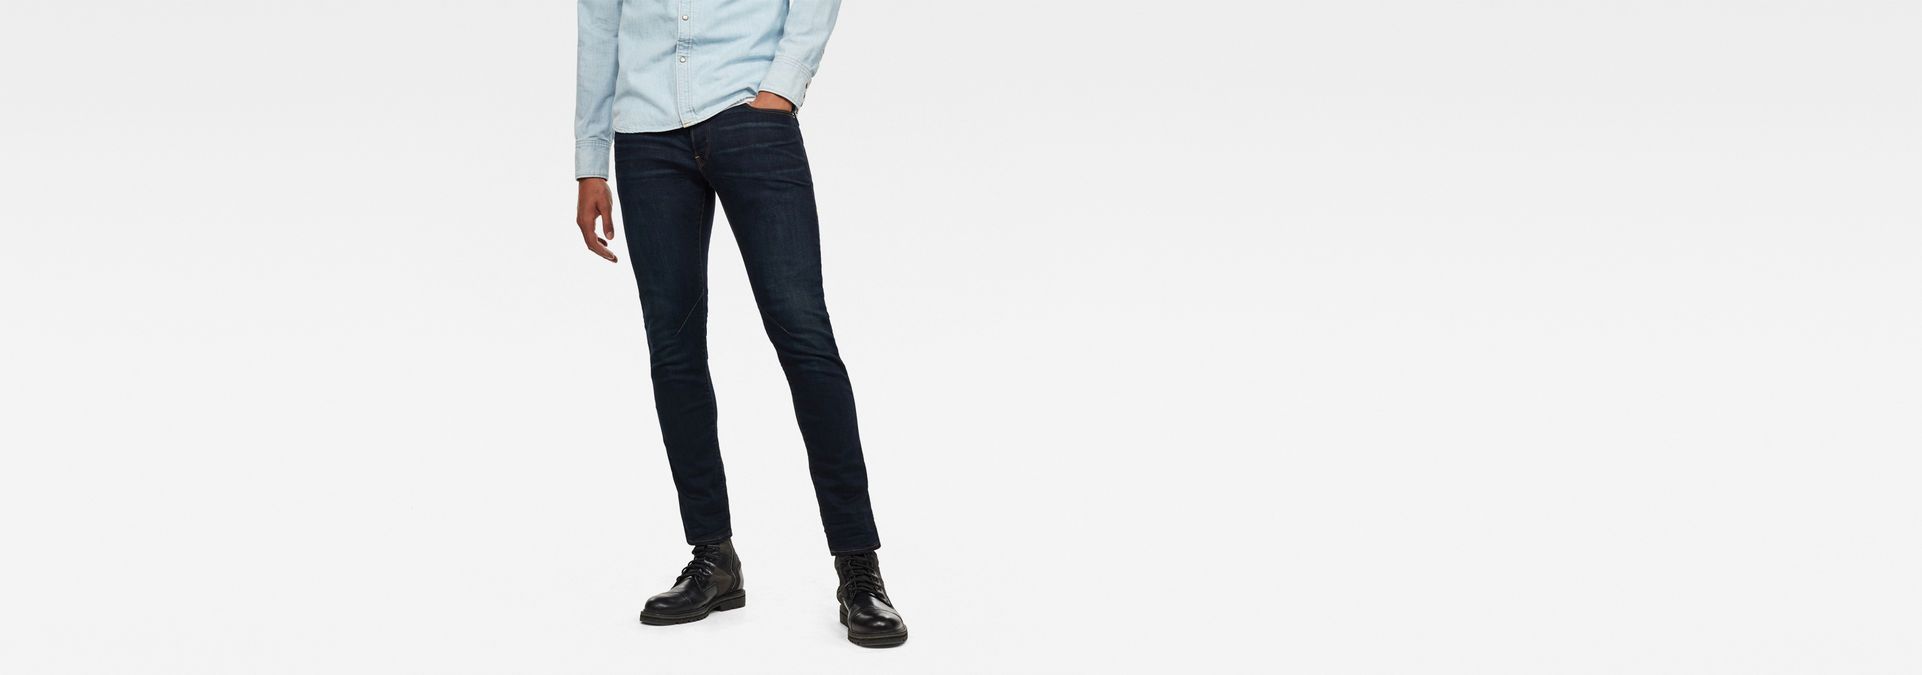 D Staq 5 Pockets Slim Jeans by G Star